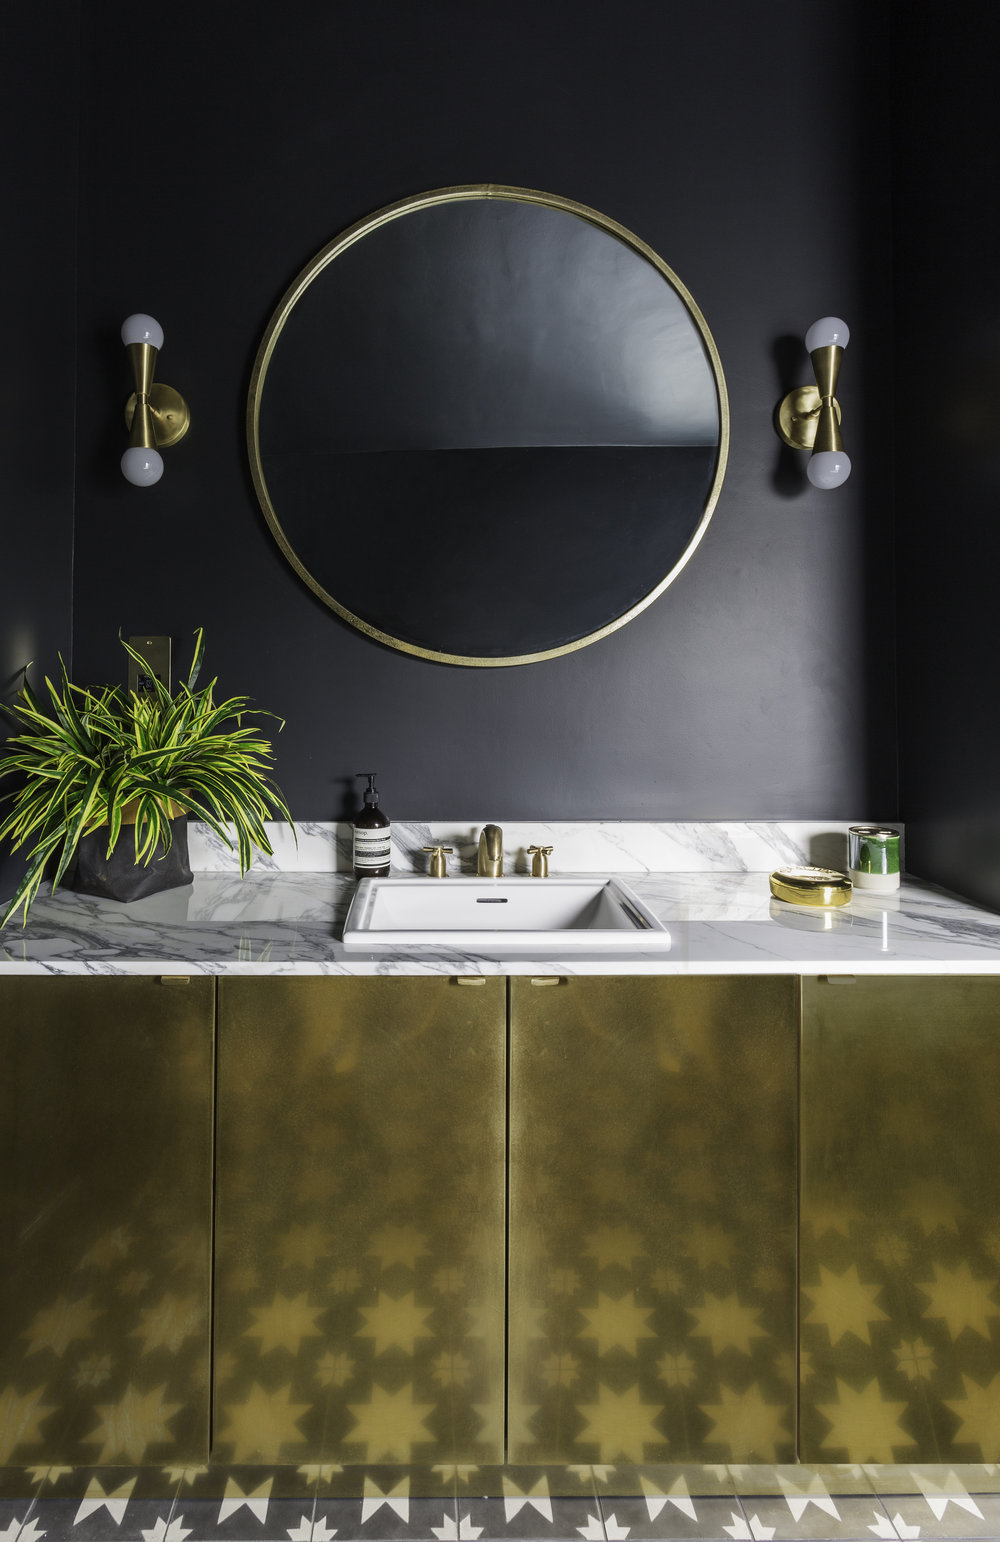 Glorious Custom Fronts brass cabinet,  Victoria + Albert Baths Pembroke sink  and  Perrin & Rowe Crosshead taps  in Satin Brass, Bert & May Pradena tiles Photo: Kasia Fizser